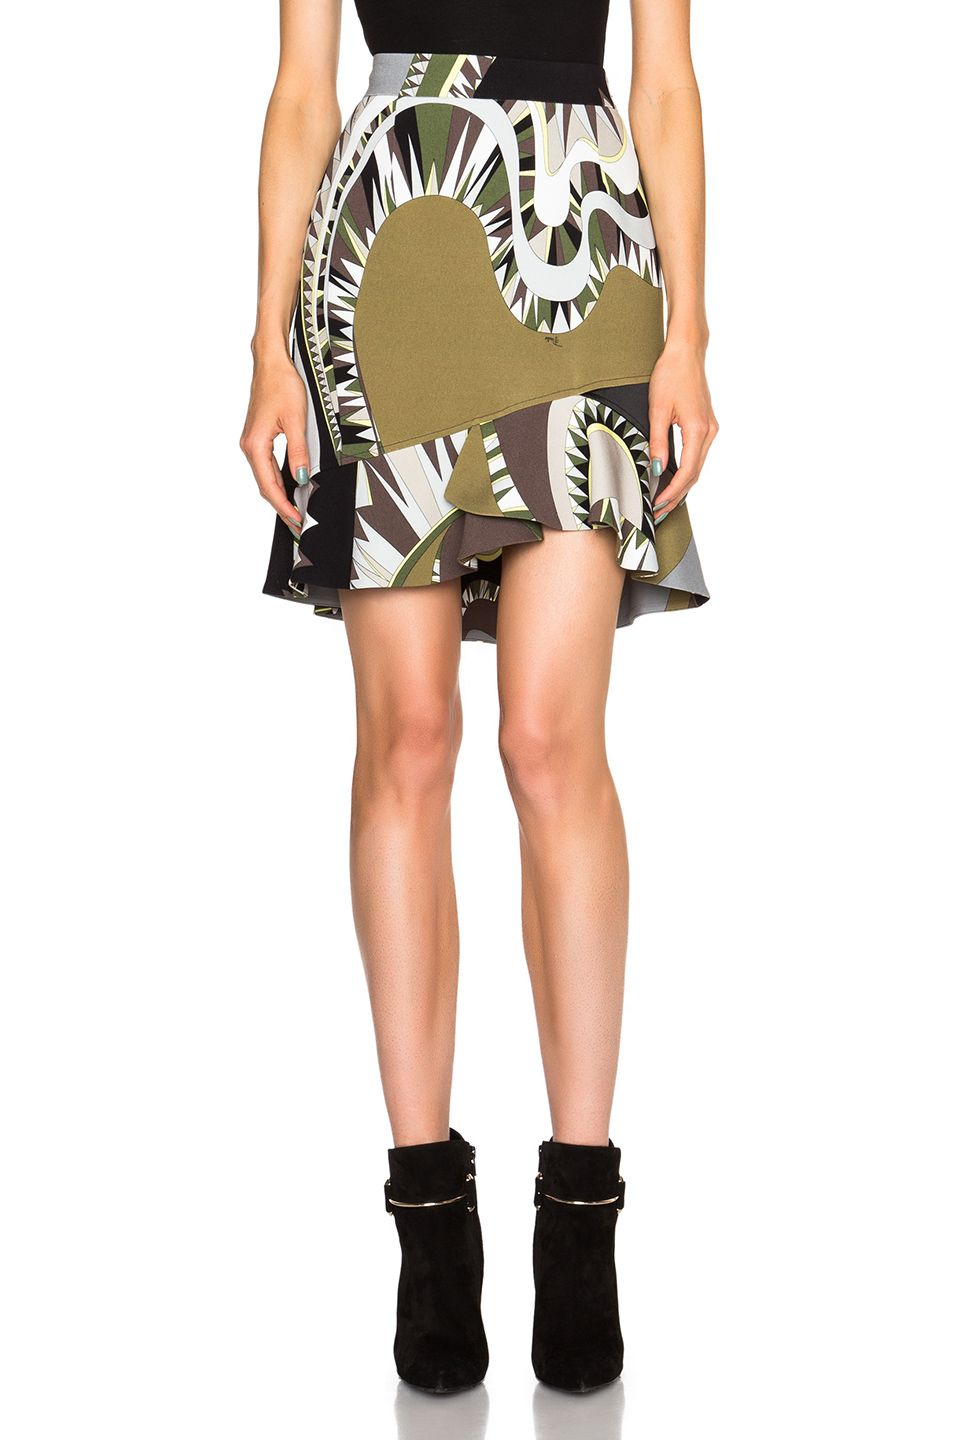 118fcb994835 Image 1 of Emilio Pucci Printed Flounce Skirt in Black   Khaki